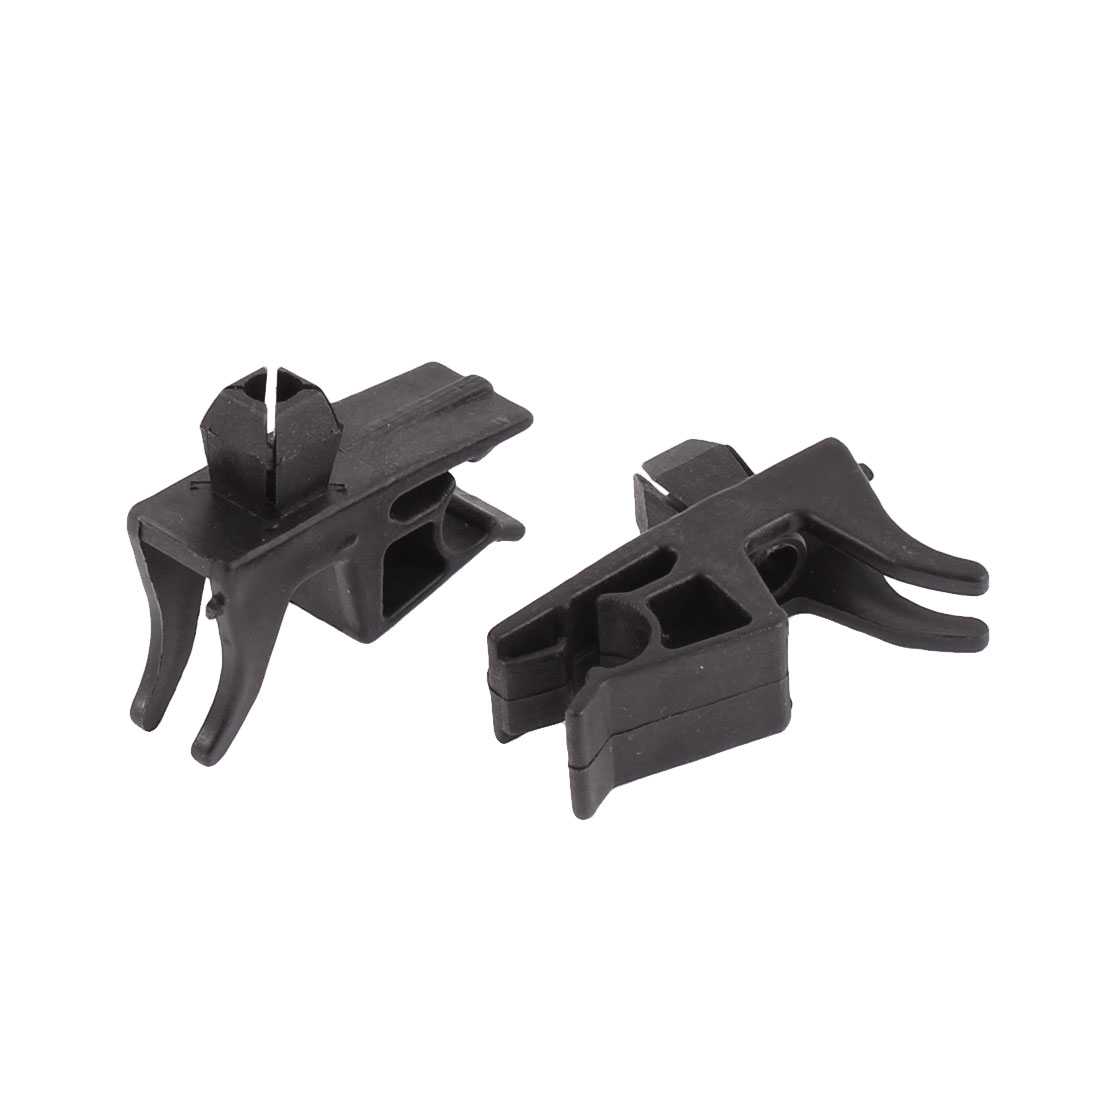 Truck Car Bonnet Hood Support Prop Arm Holder Clamps Clips 2pcs for 8mm Dia Rod